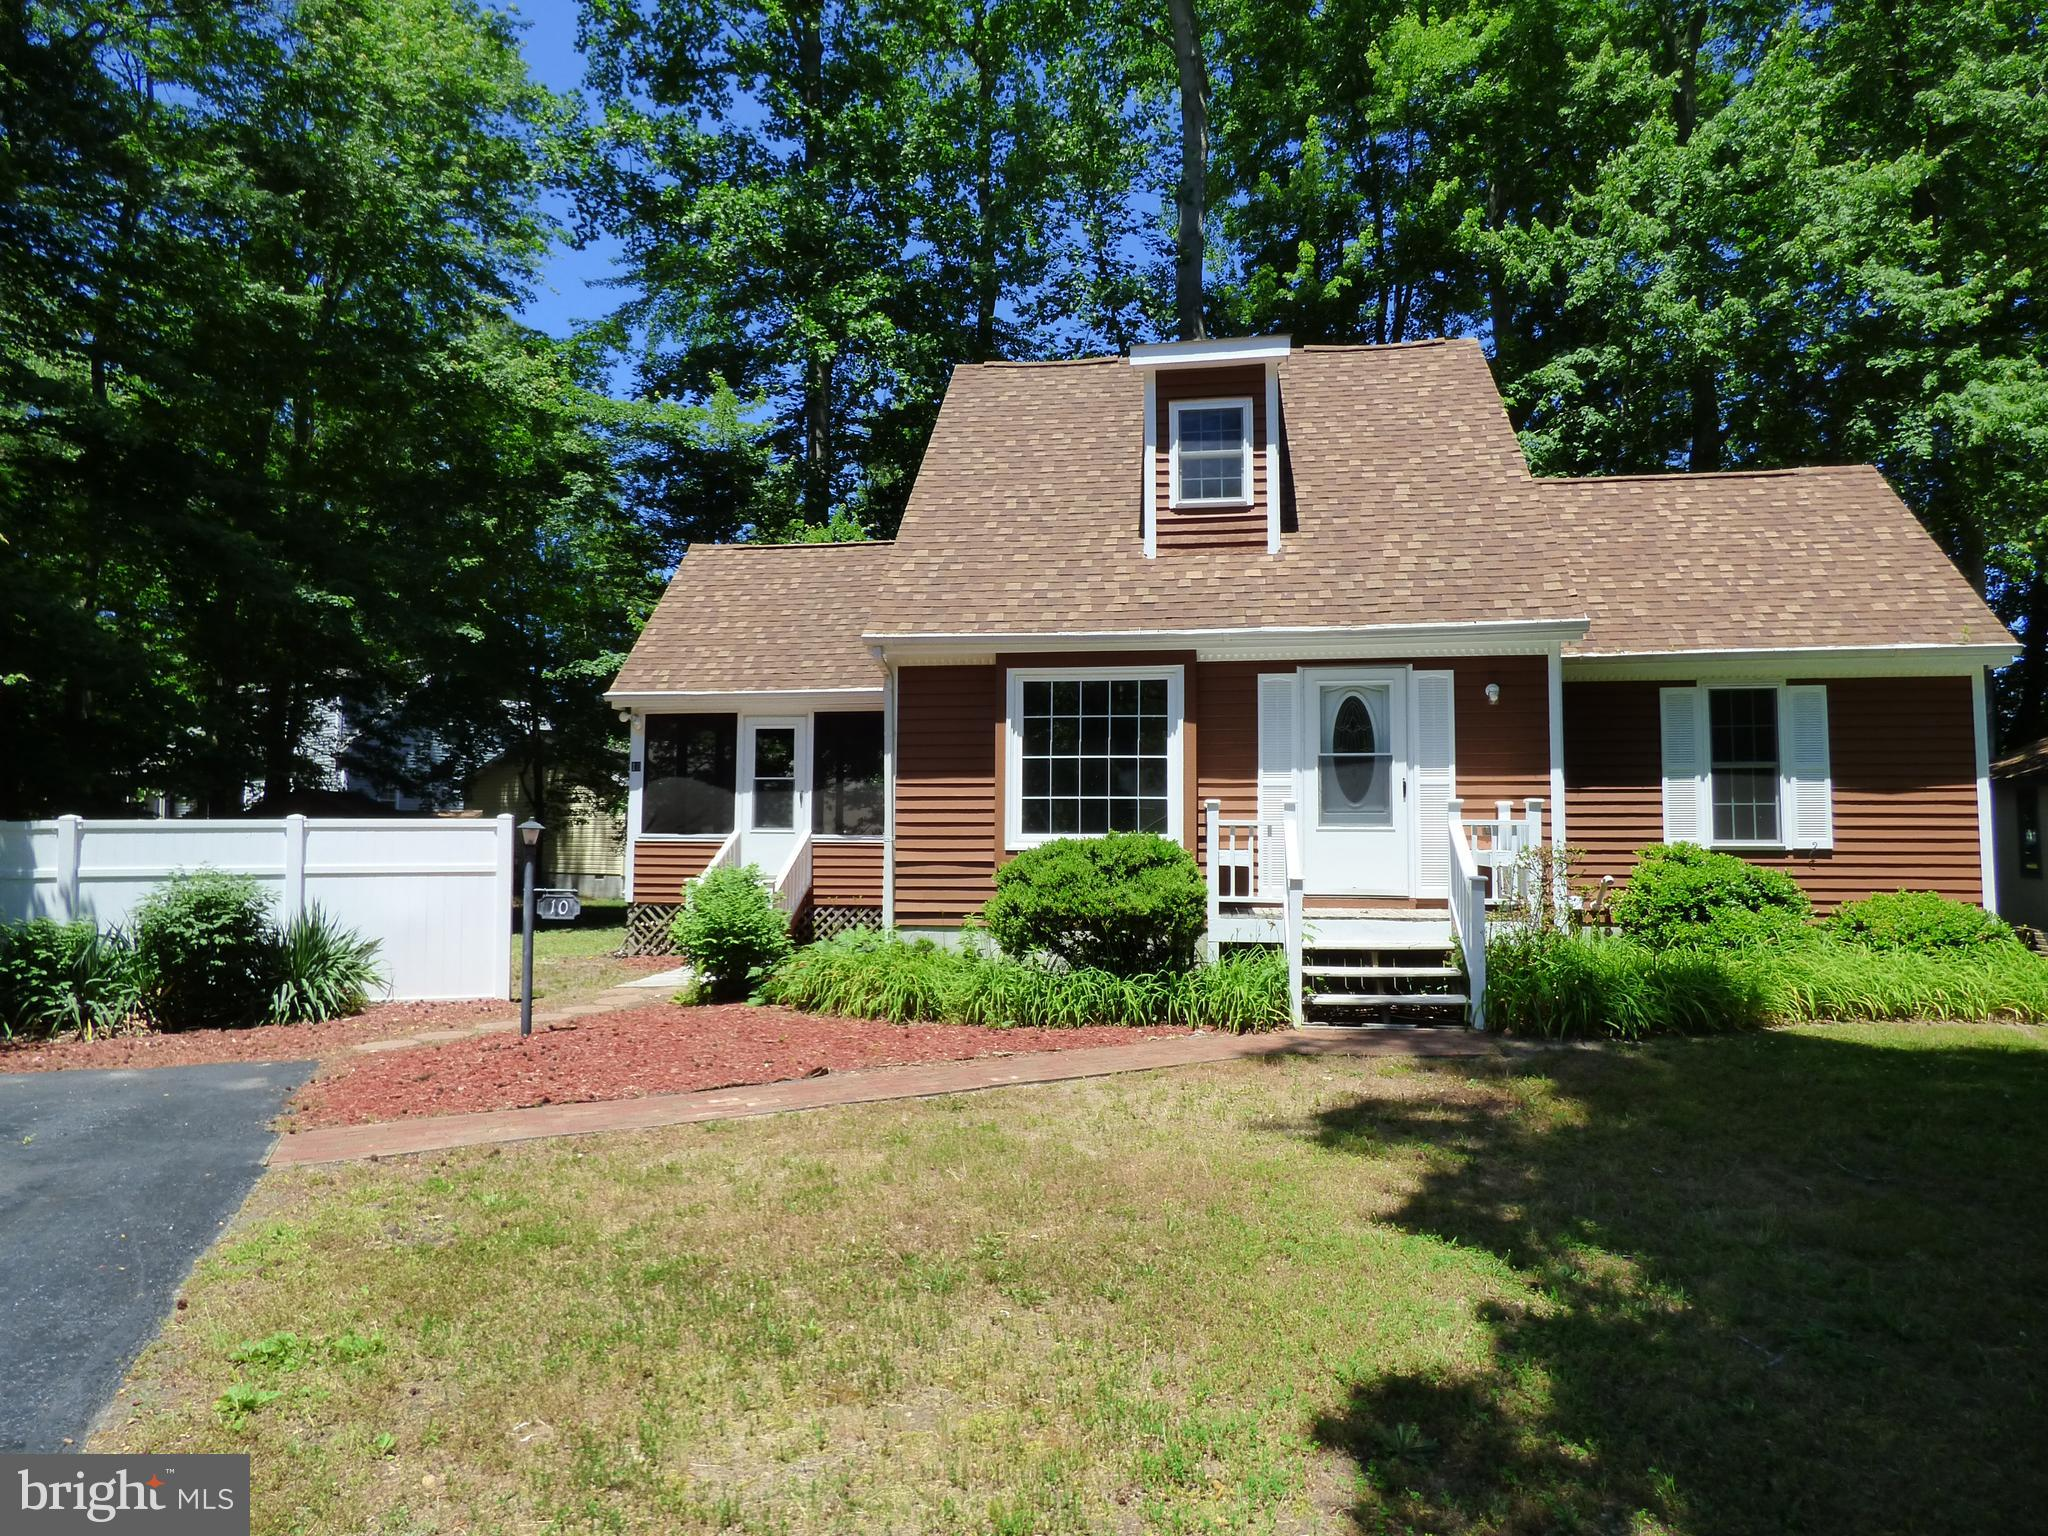 10 BIRCH PLACE, OCEAN PINES, MD 21811